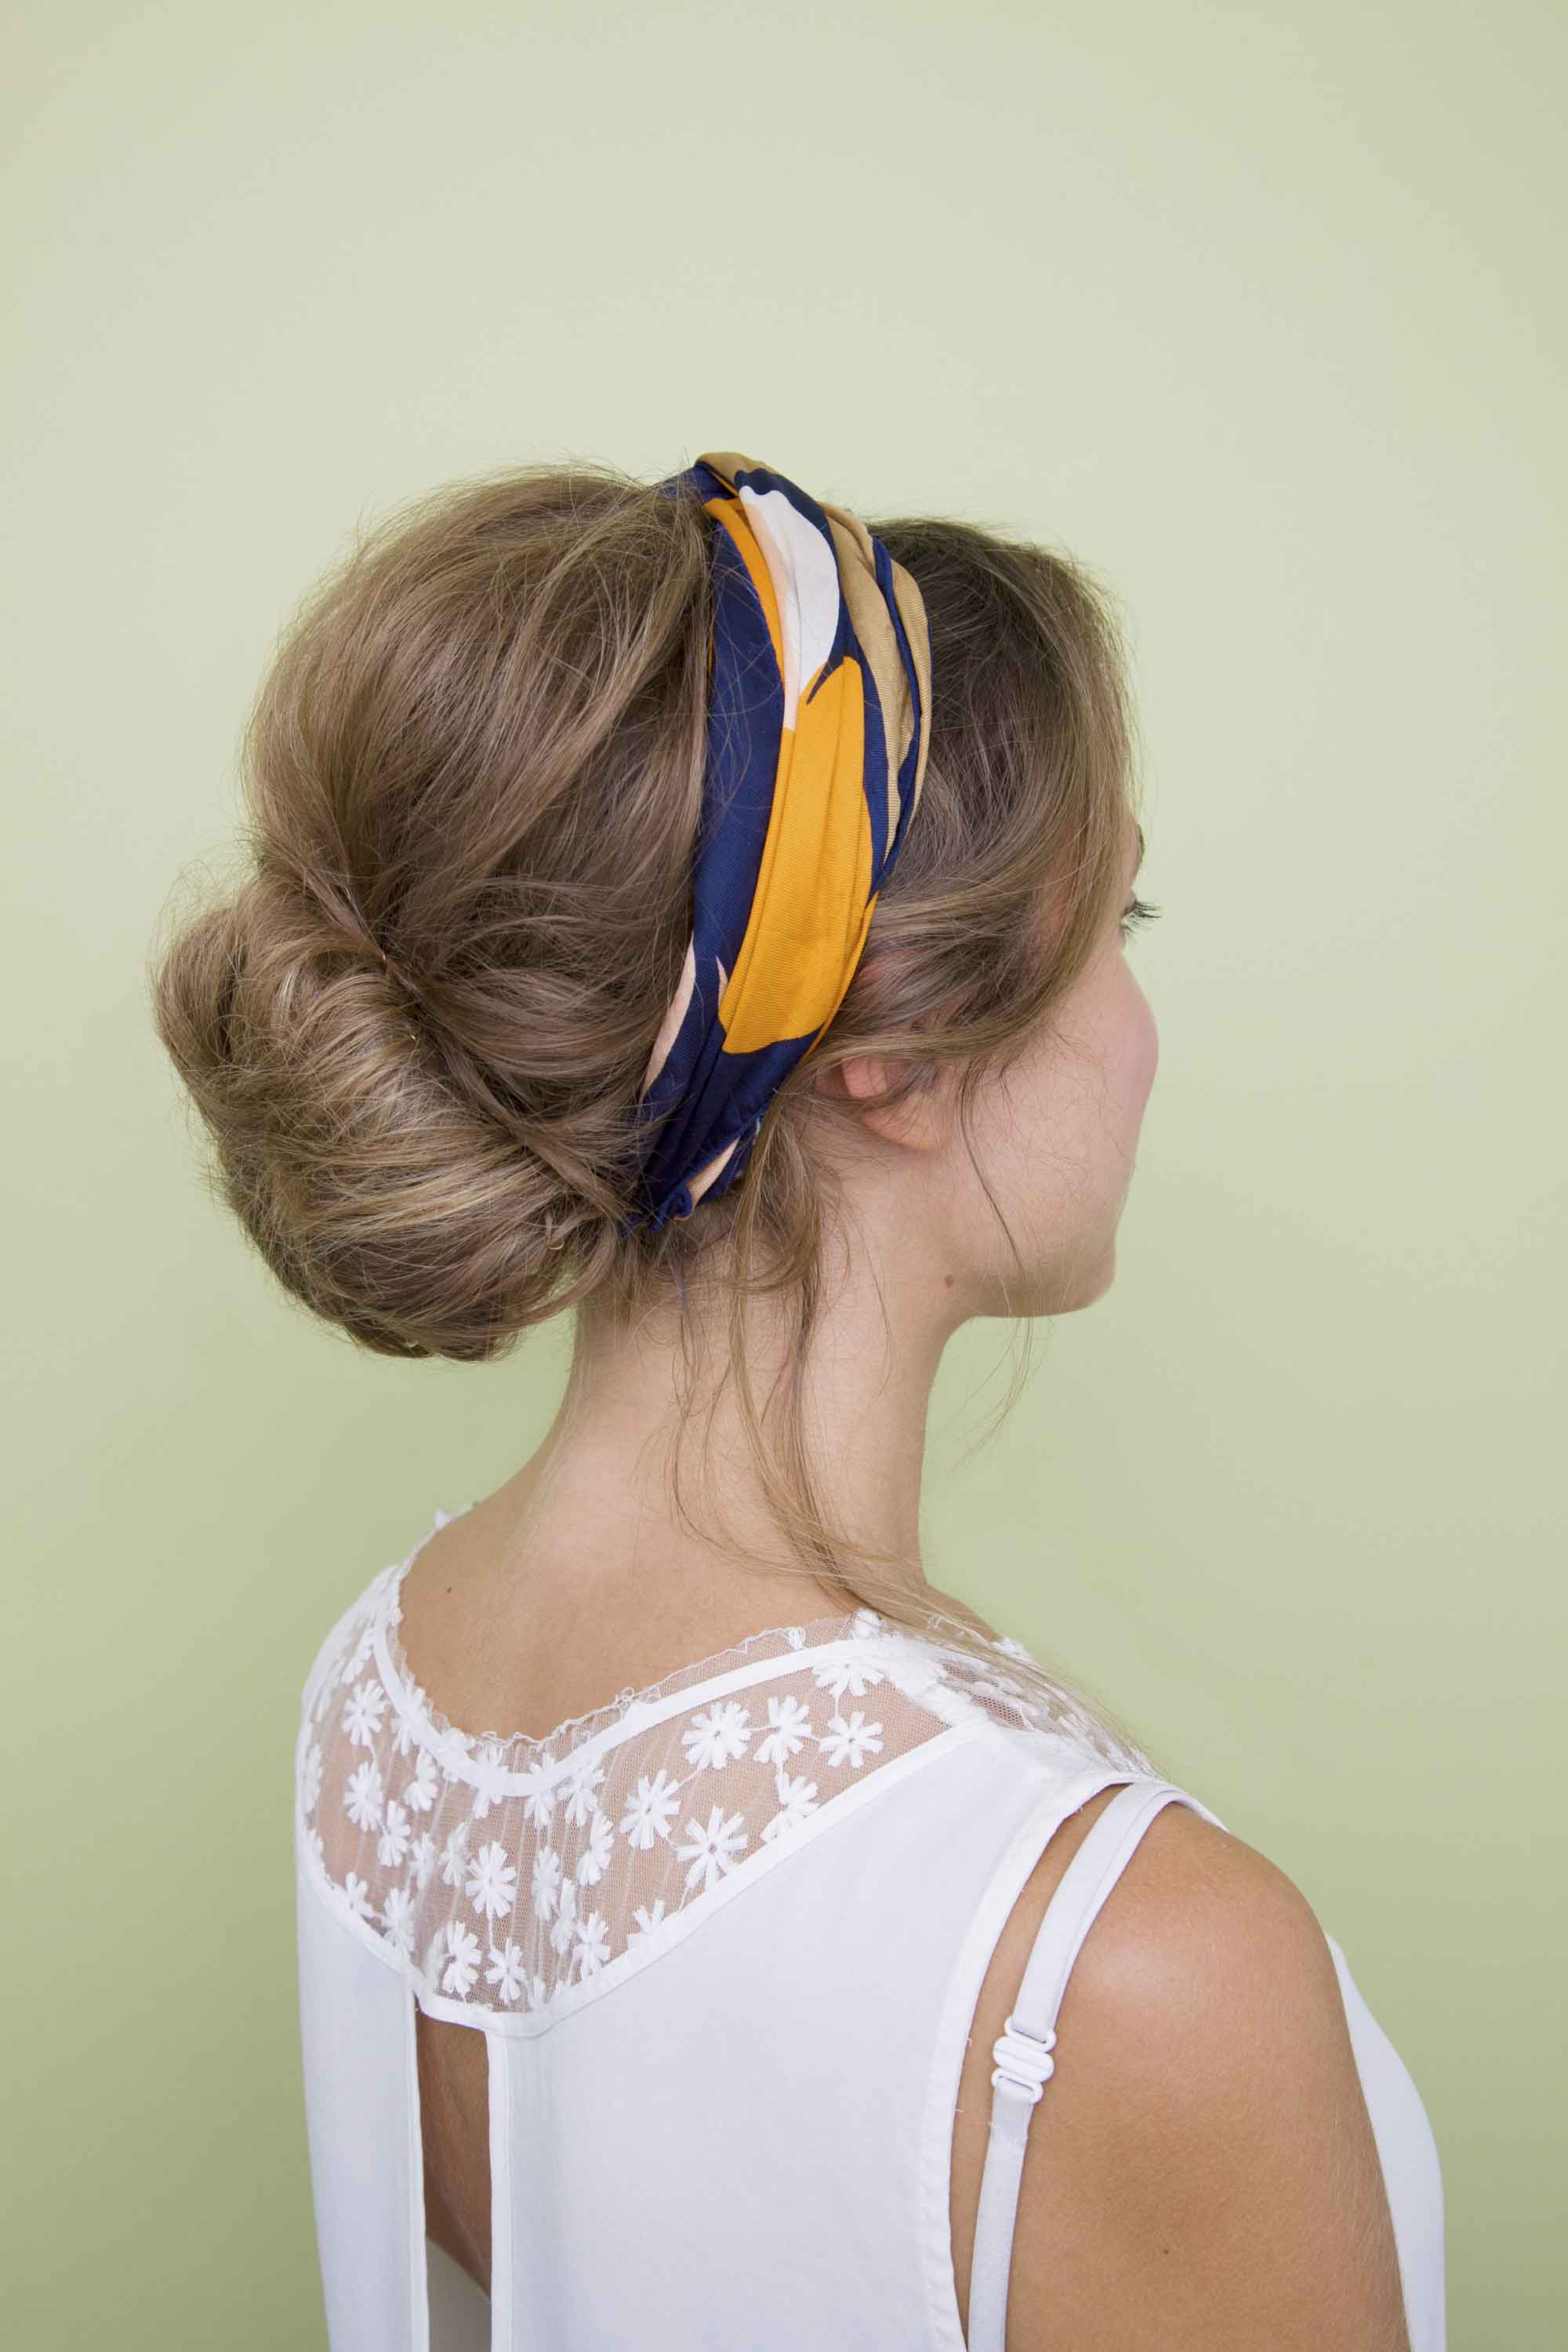 Festival hair: side view of woman with natural blonde hair styled in a low big messy bun with yellow headscarf headband in studio setting